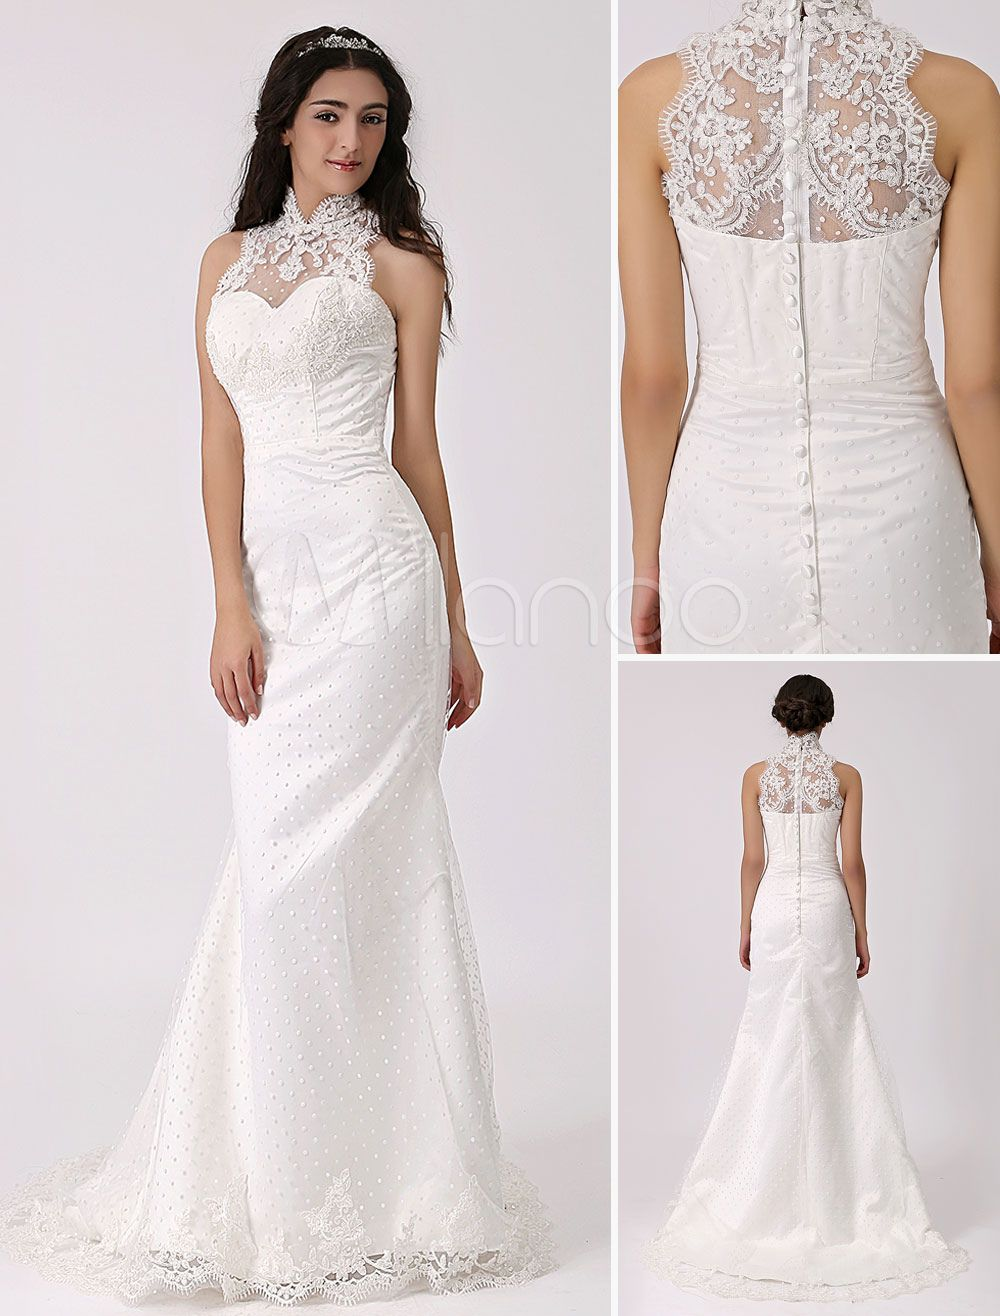 Vintage Inspired Illusion Neck Sheath/Column Wedding Dress with Lace ...